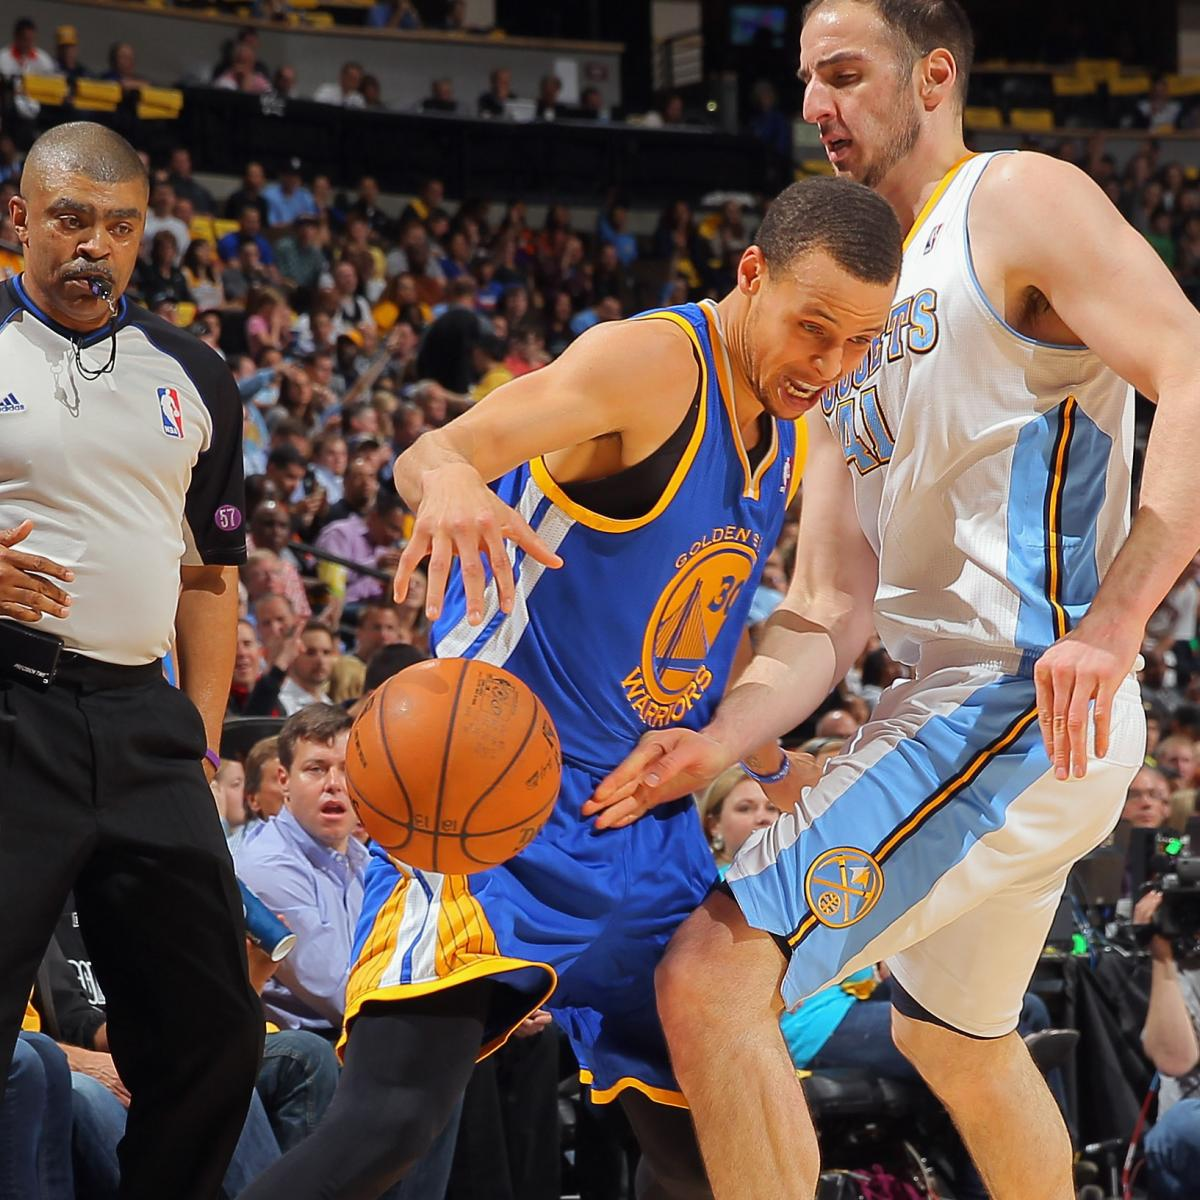 Denver Nuggets Vs. Golden State Warriors: Game 6 Preview